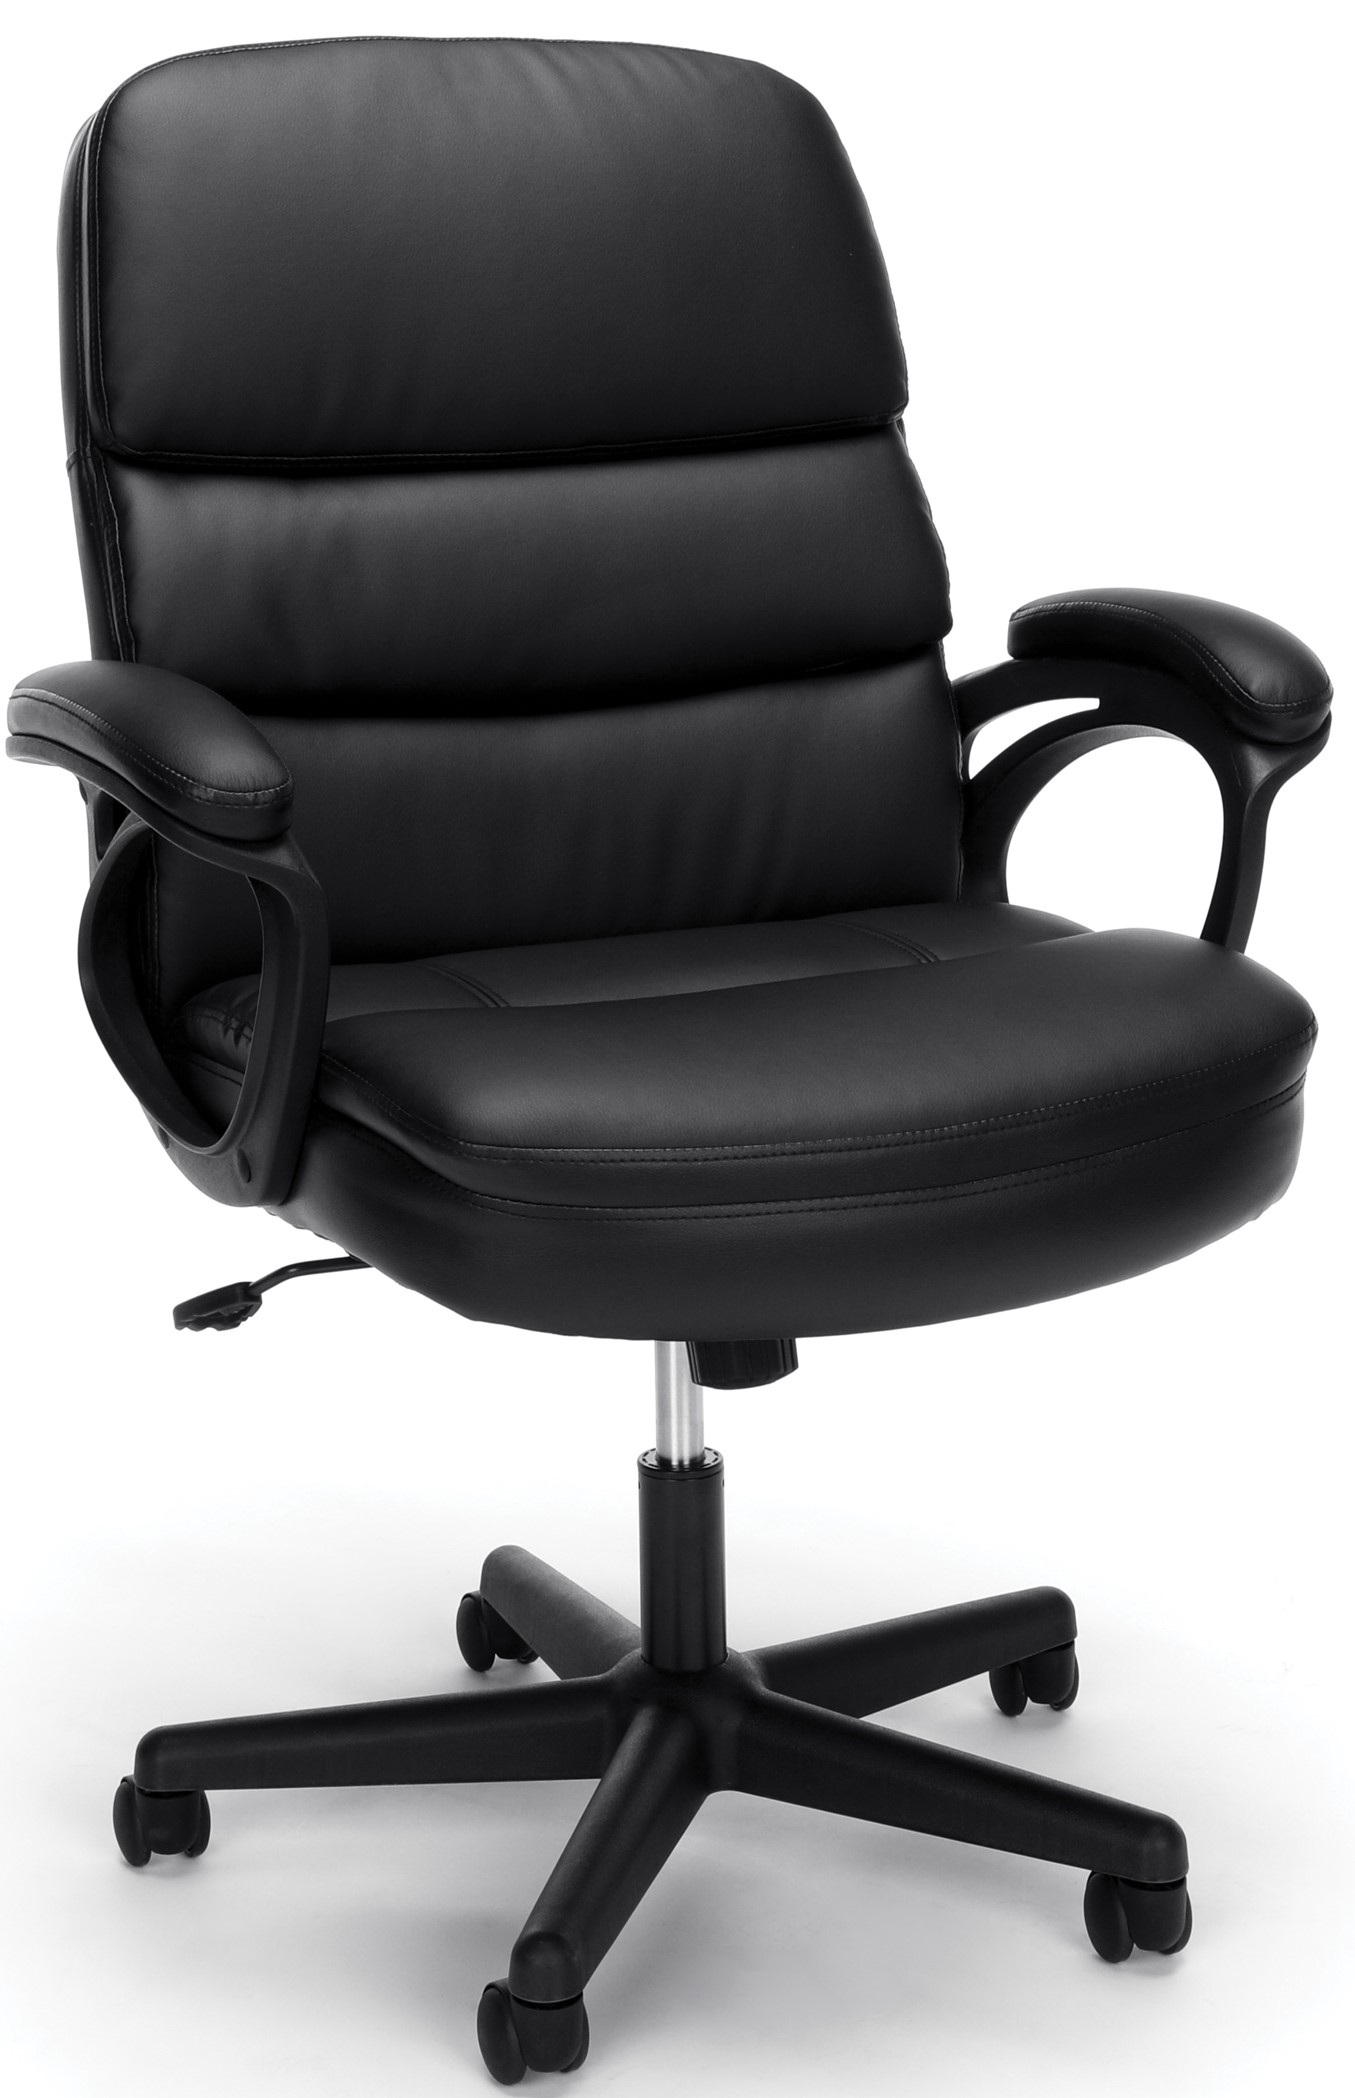 Essentials Executive Manager's Chair with Arms Black